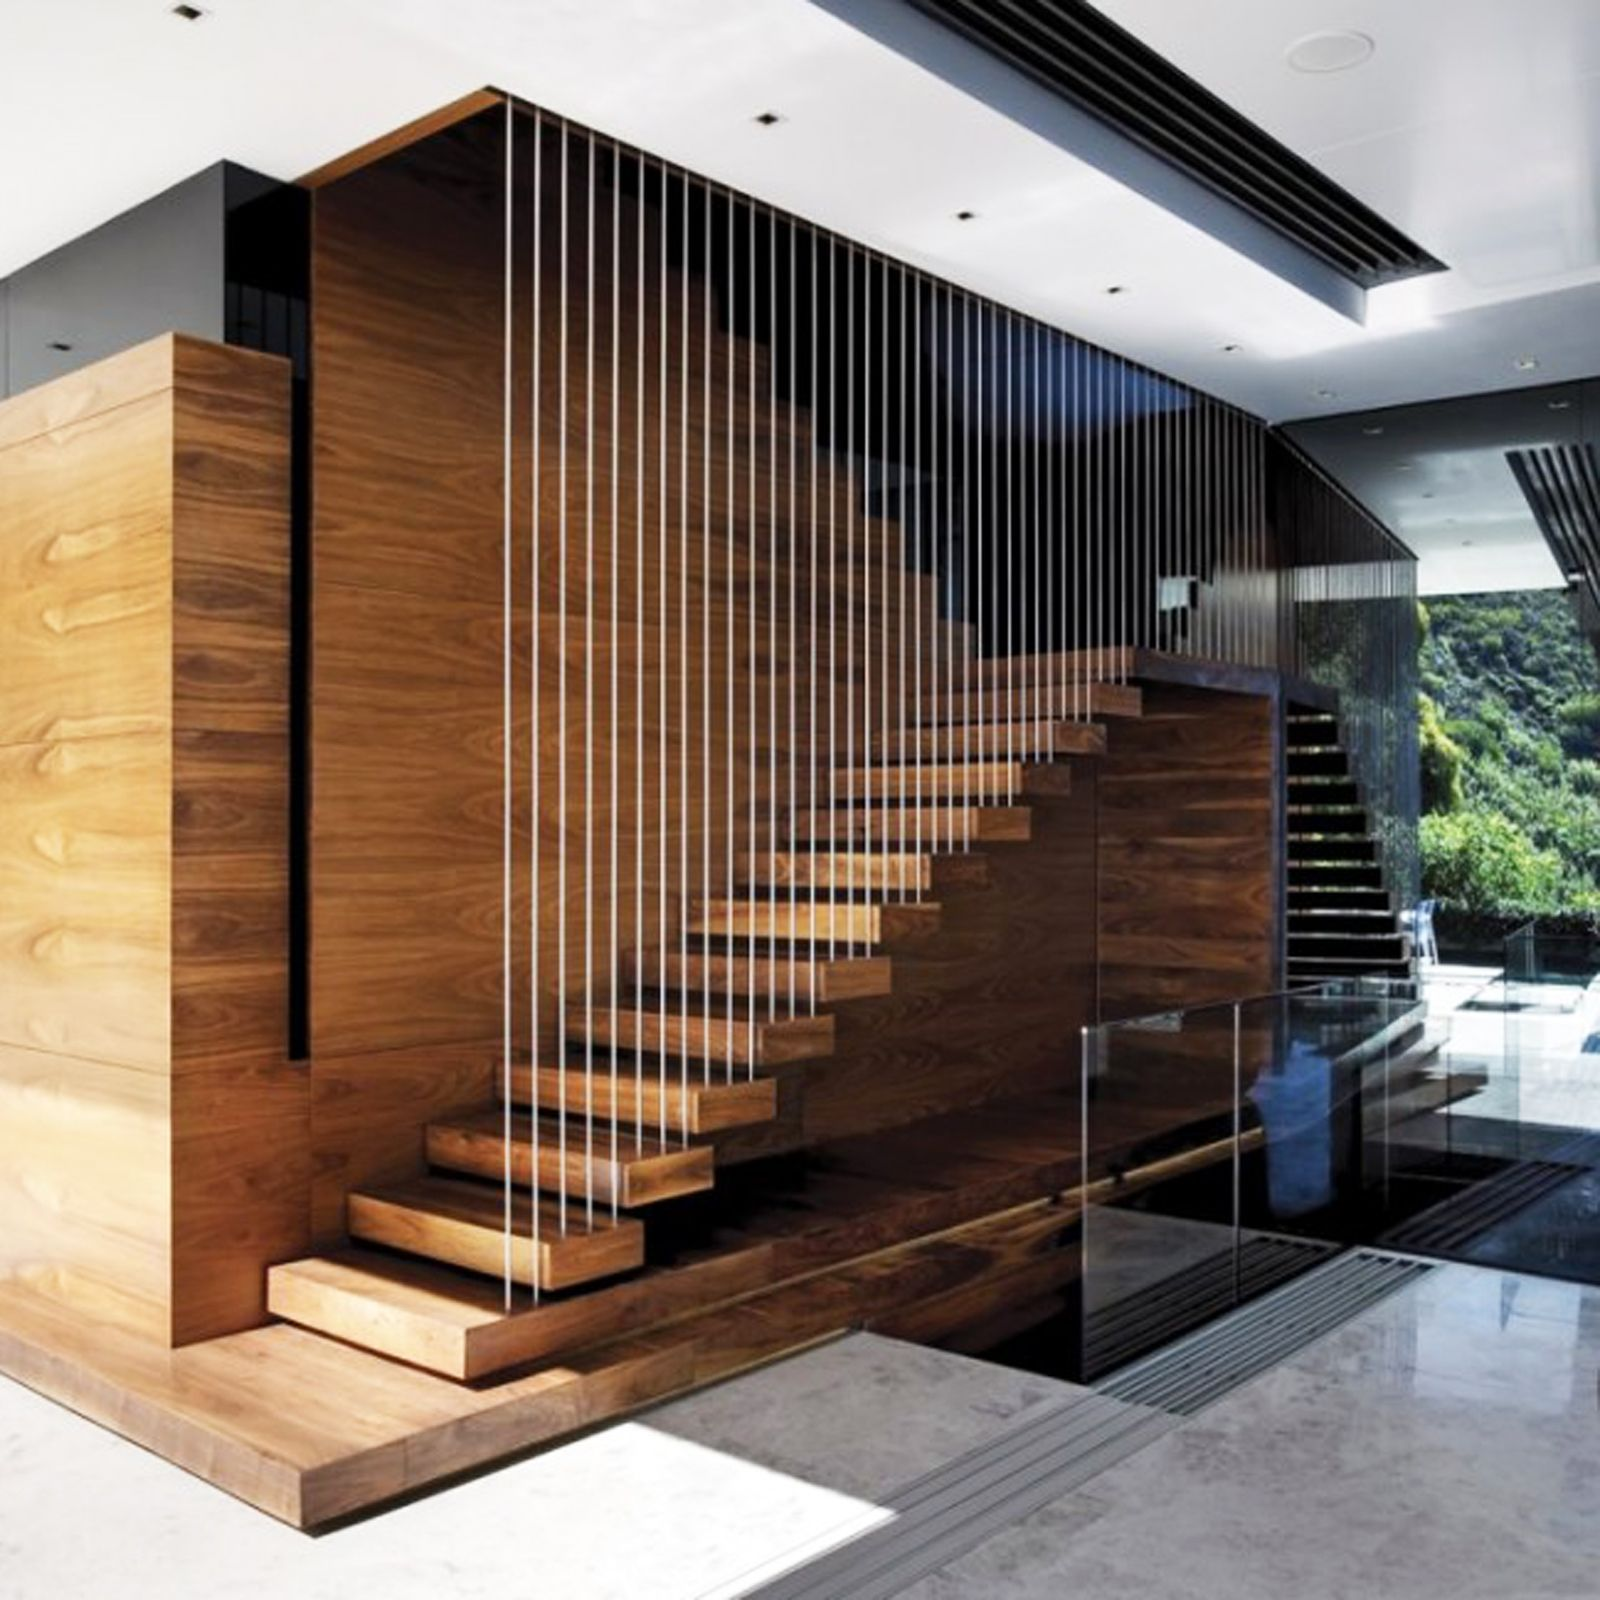 Inspirational Stairs Design: Exciting Ideas For Residential Design Elements